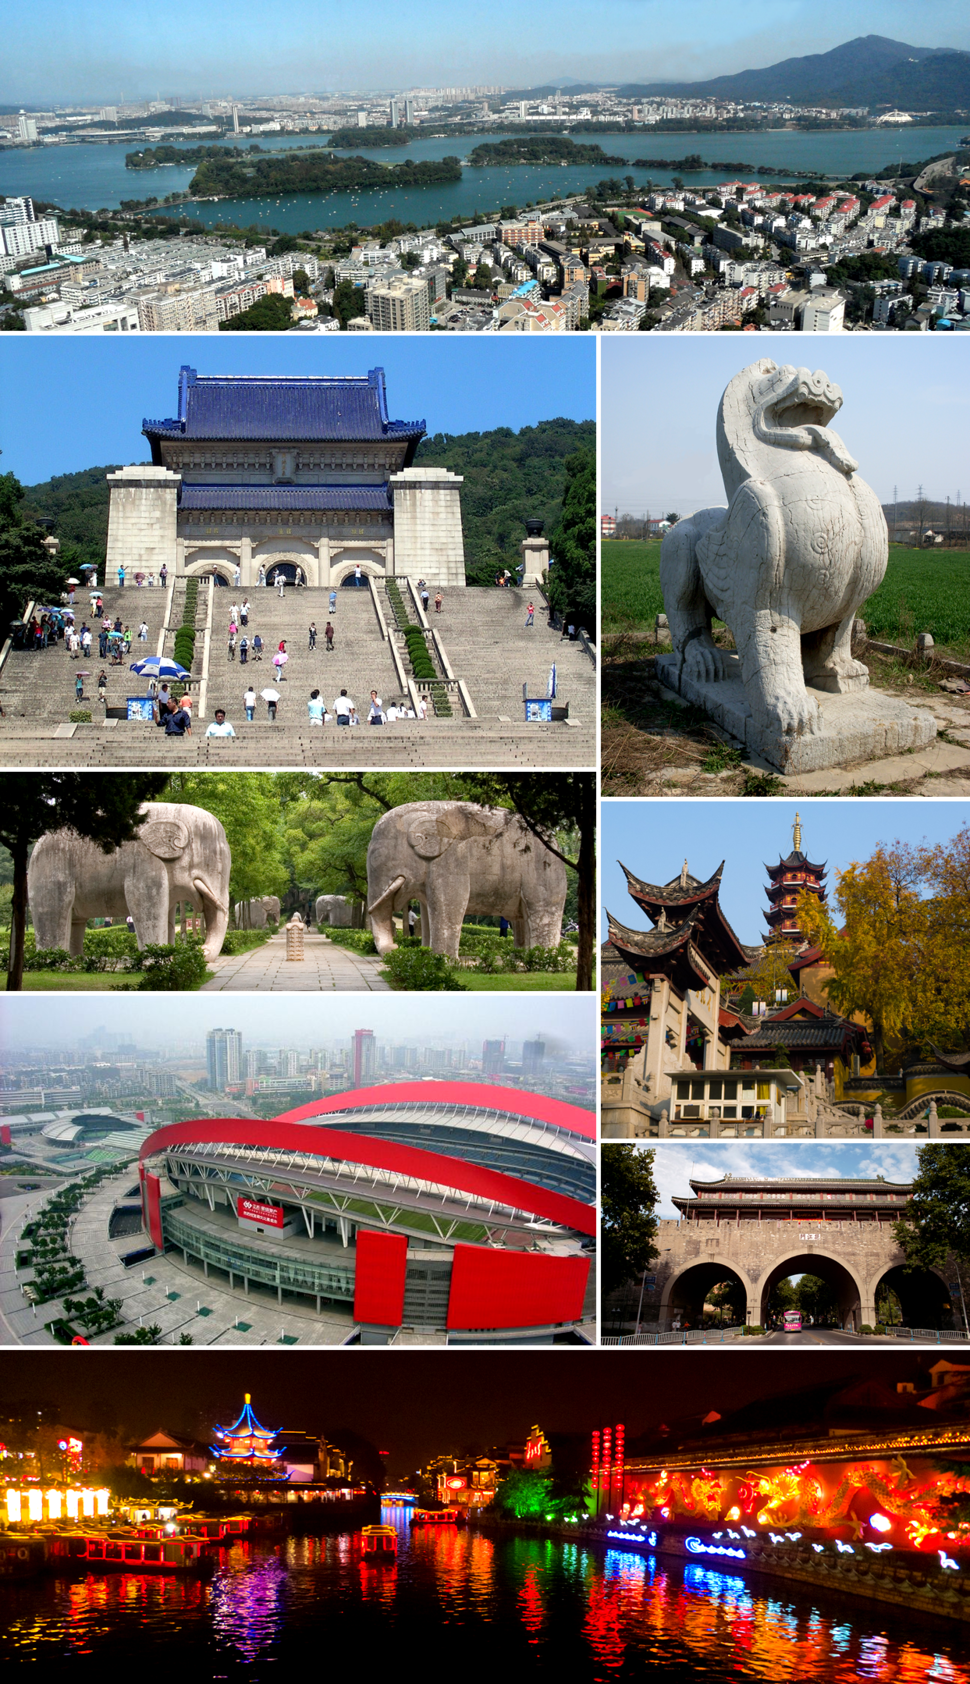 "Clockwise from top: 1. the city, Xuanwu Lake and Purple Mountain; 2. stone sculpture ""bixie""; 3. Jiming Temple; 4. Yijiang Gate with the City Wall of Nanjing; 5. Qinhuai River and Fuzi Miao; 6. Nanjing Olympic Sports Center; 7. the spirit way of Ming Xiaoling Mausoleum; 8. Sun Yat-sen Mausoleum"